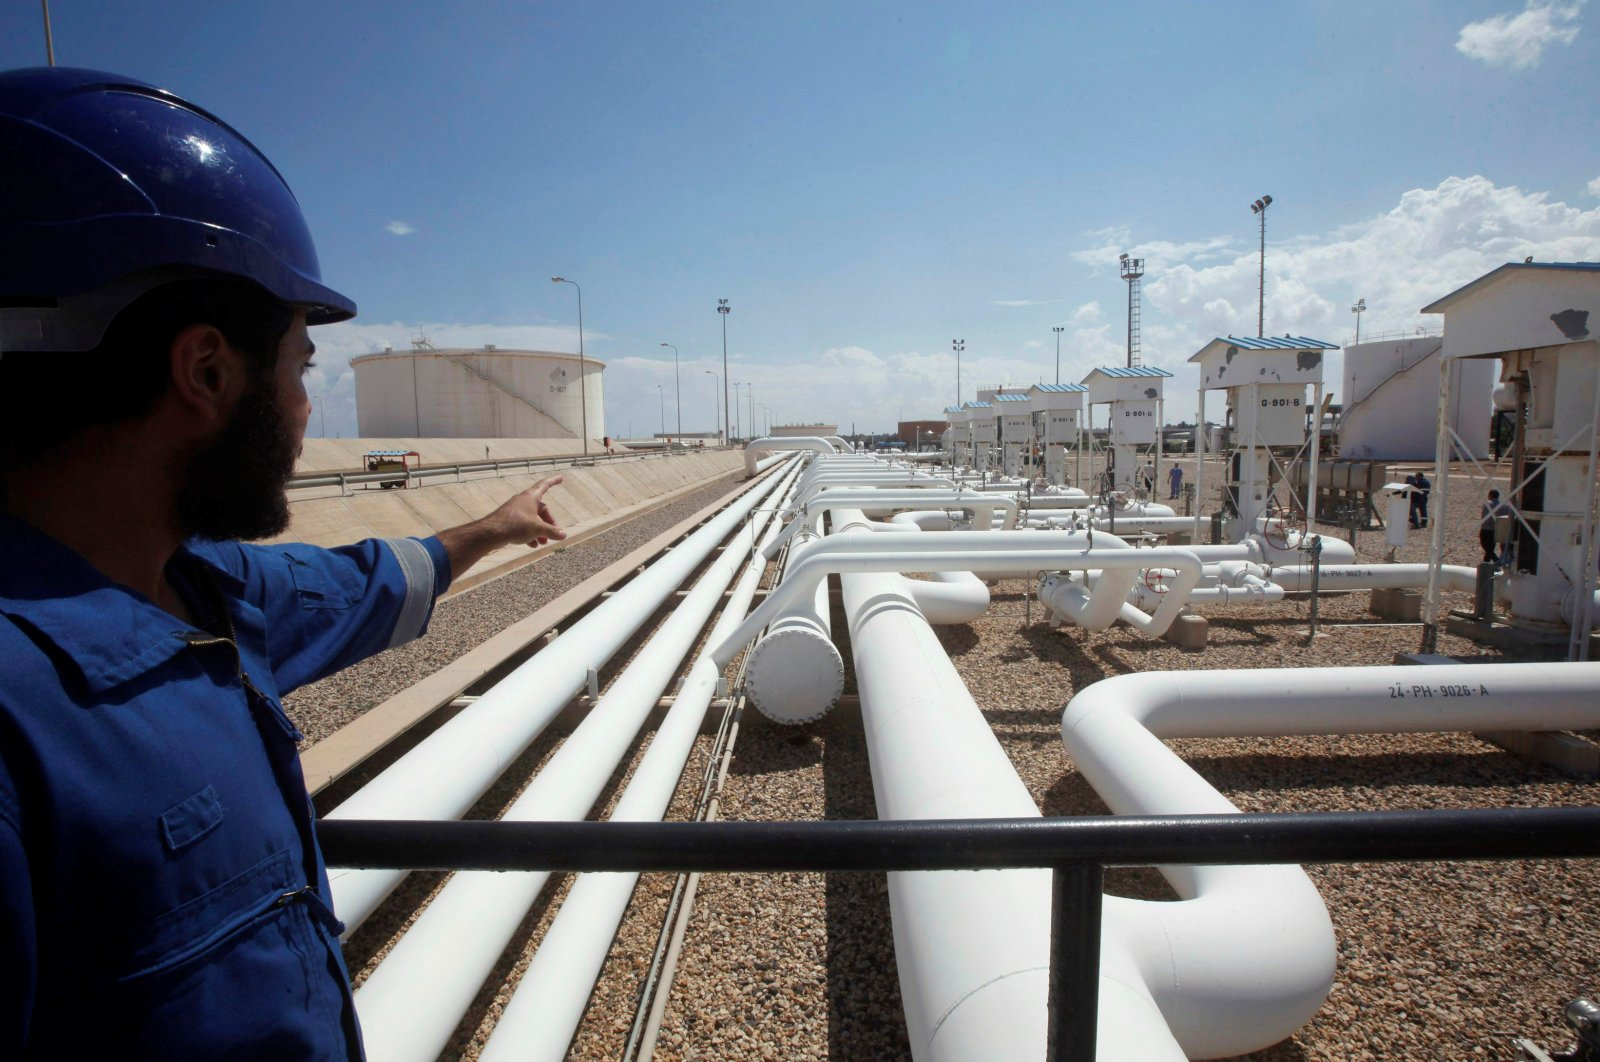 A worker gestures toward pipelines at the port and Zawiya Oil Refinery, Aug. 22, 2013. (Reuters File Photo)